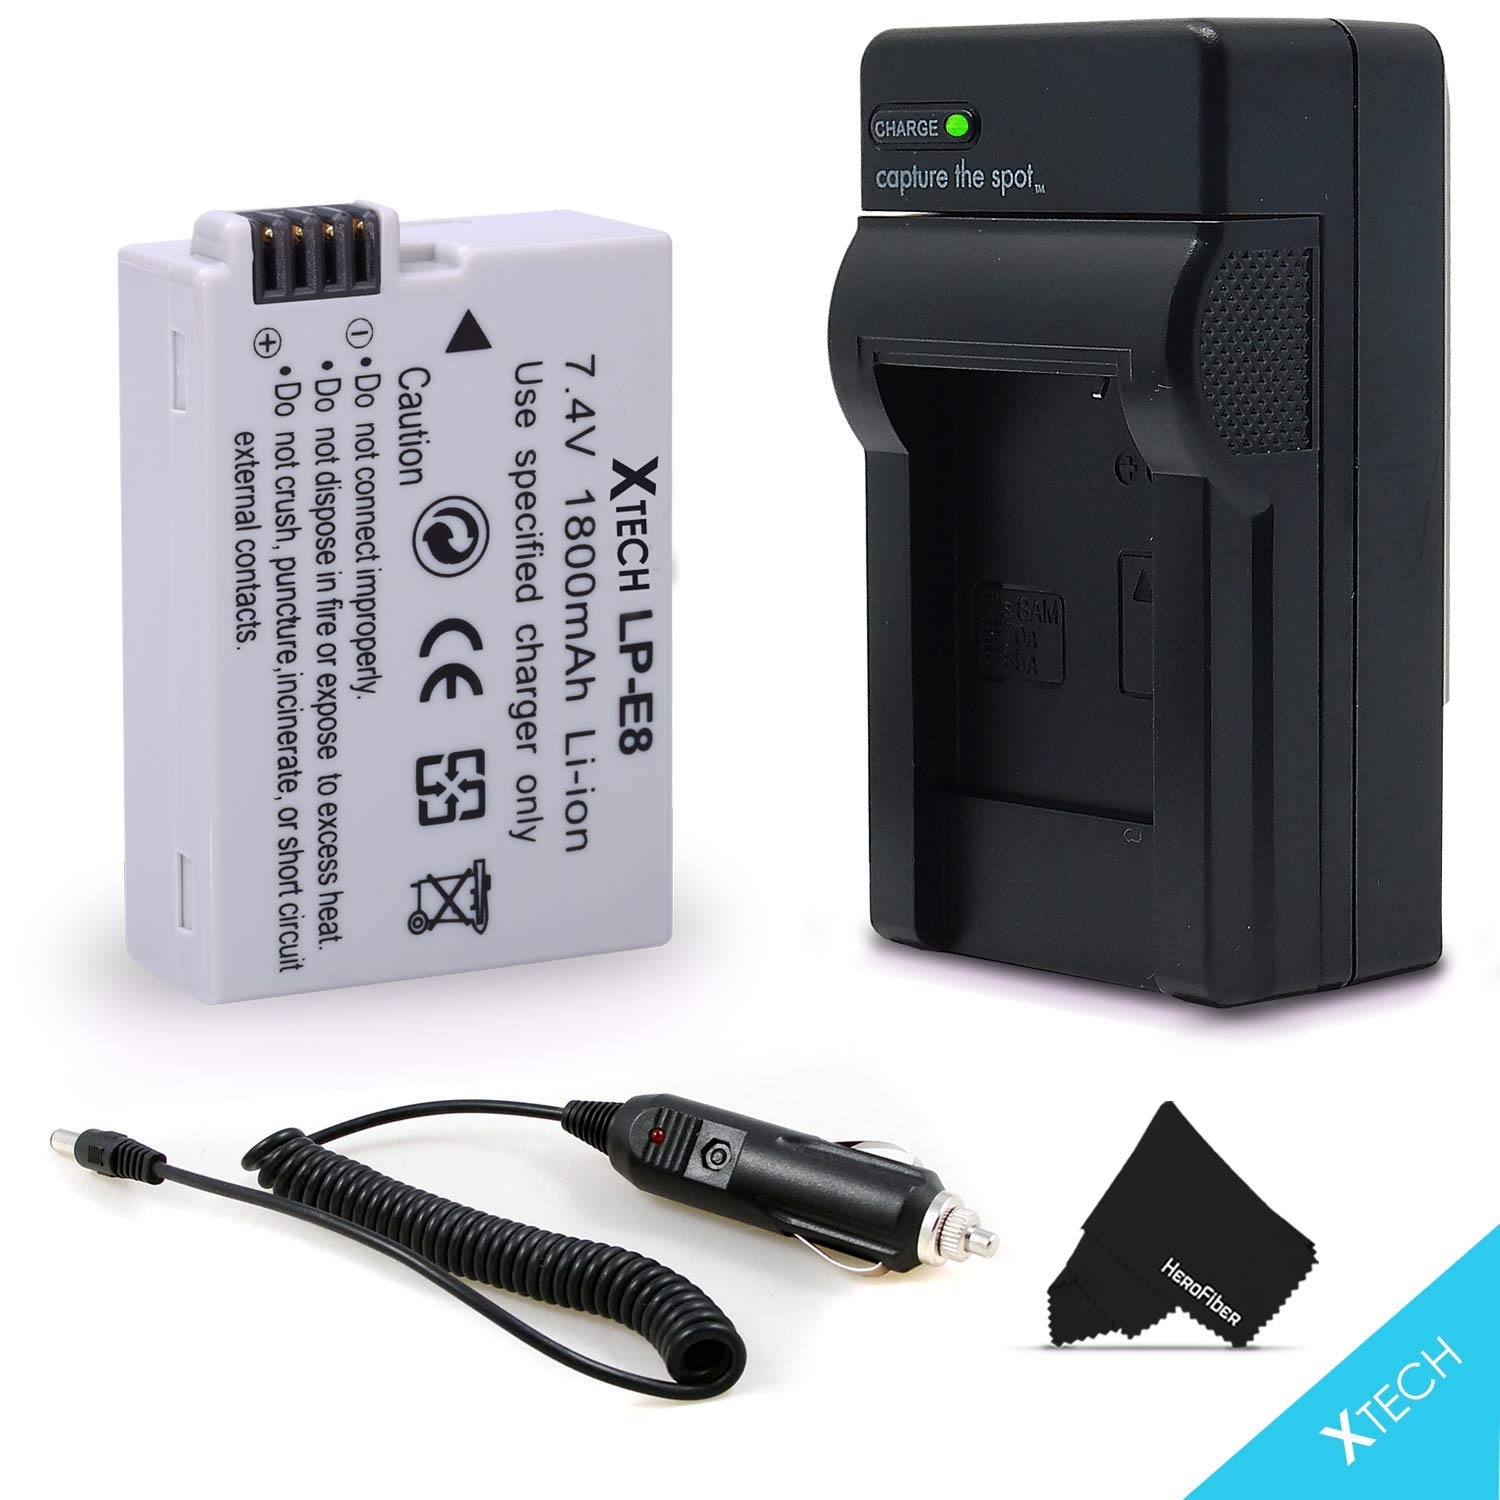 High Capacity LP-E8/LPE8 Battery and Battery Charger for Canon EOS Rebel T2i T3i T4i T5i EOS 550D 600D 650D 700D Kiss X4 X 5 X6 DSLR Cameras